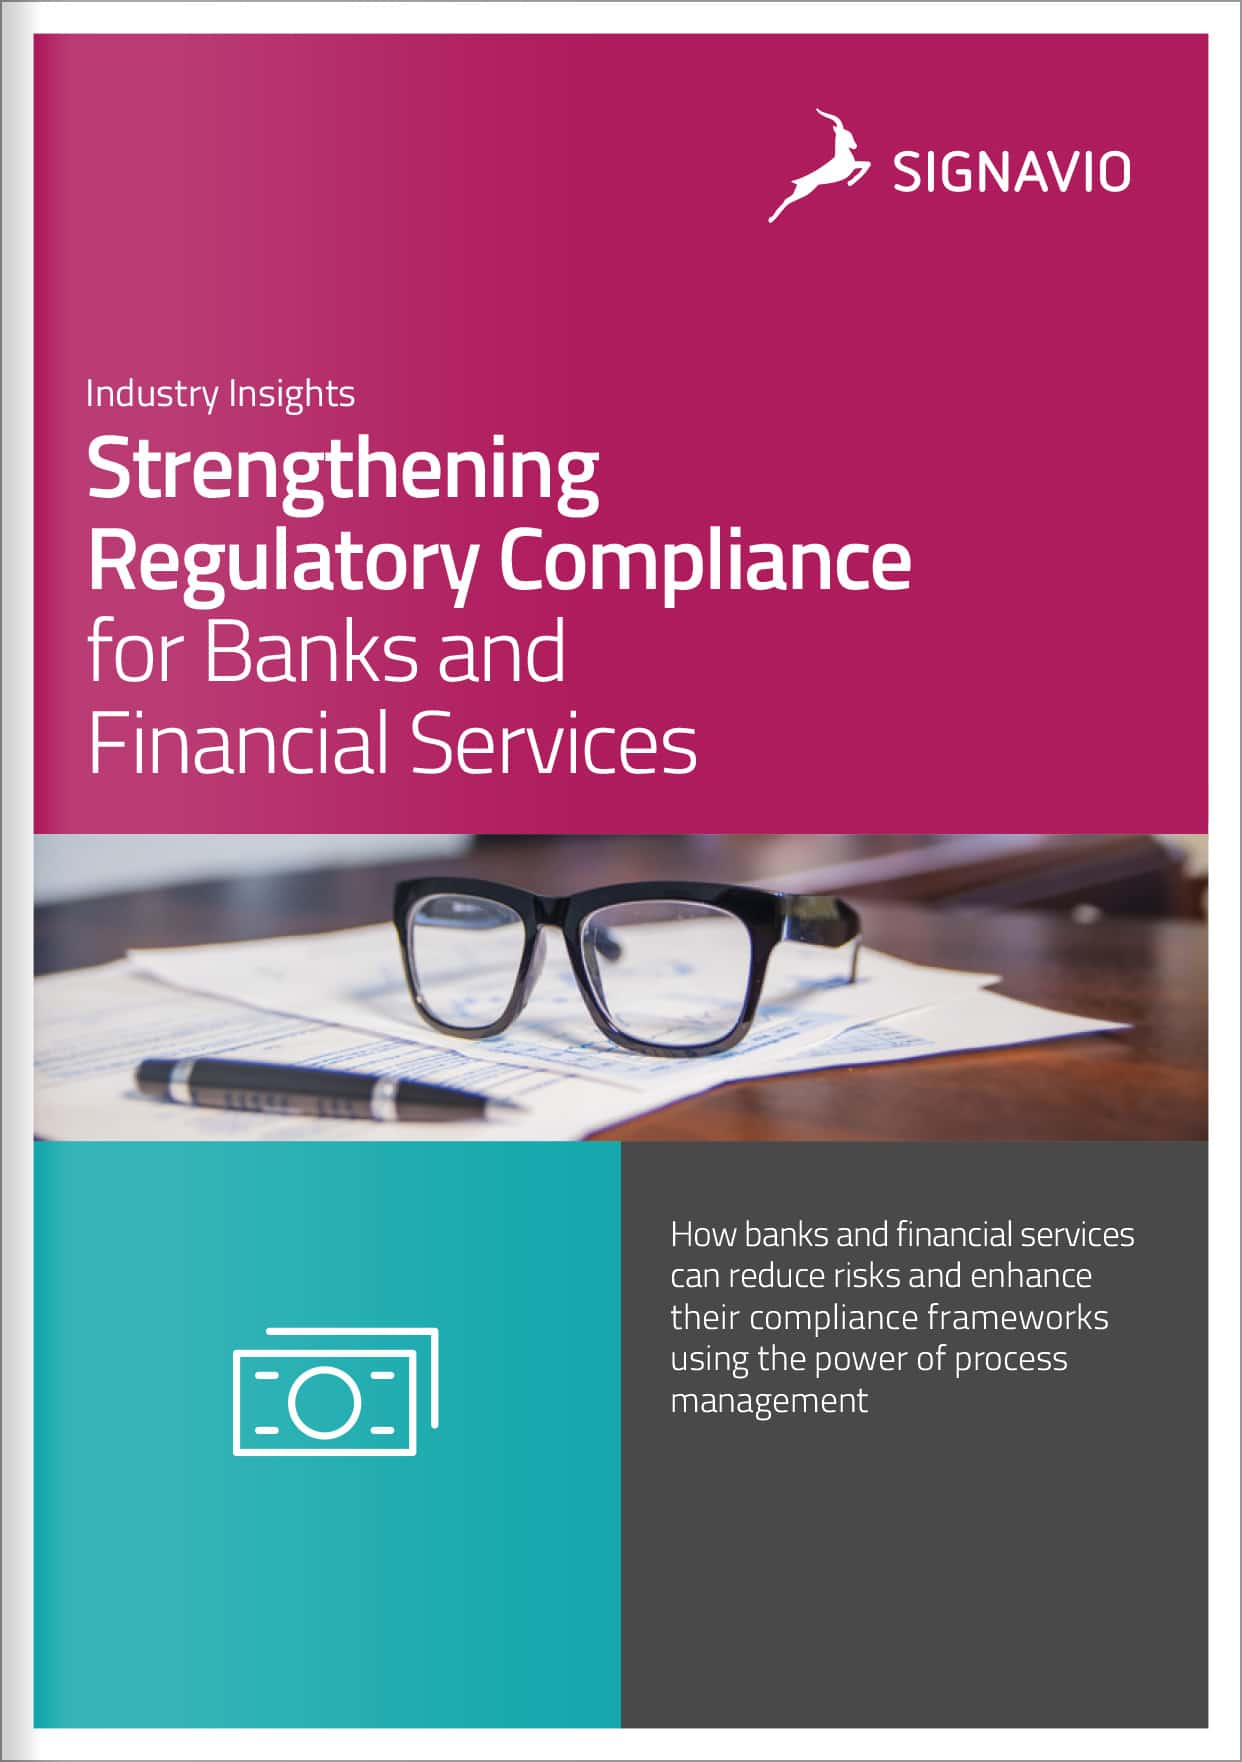 Strengthening Regulatory Compliance for Banks preview image